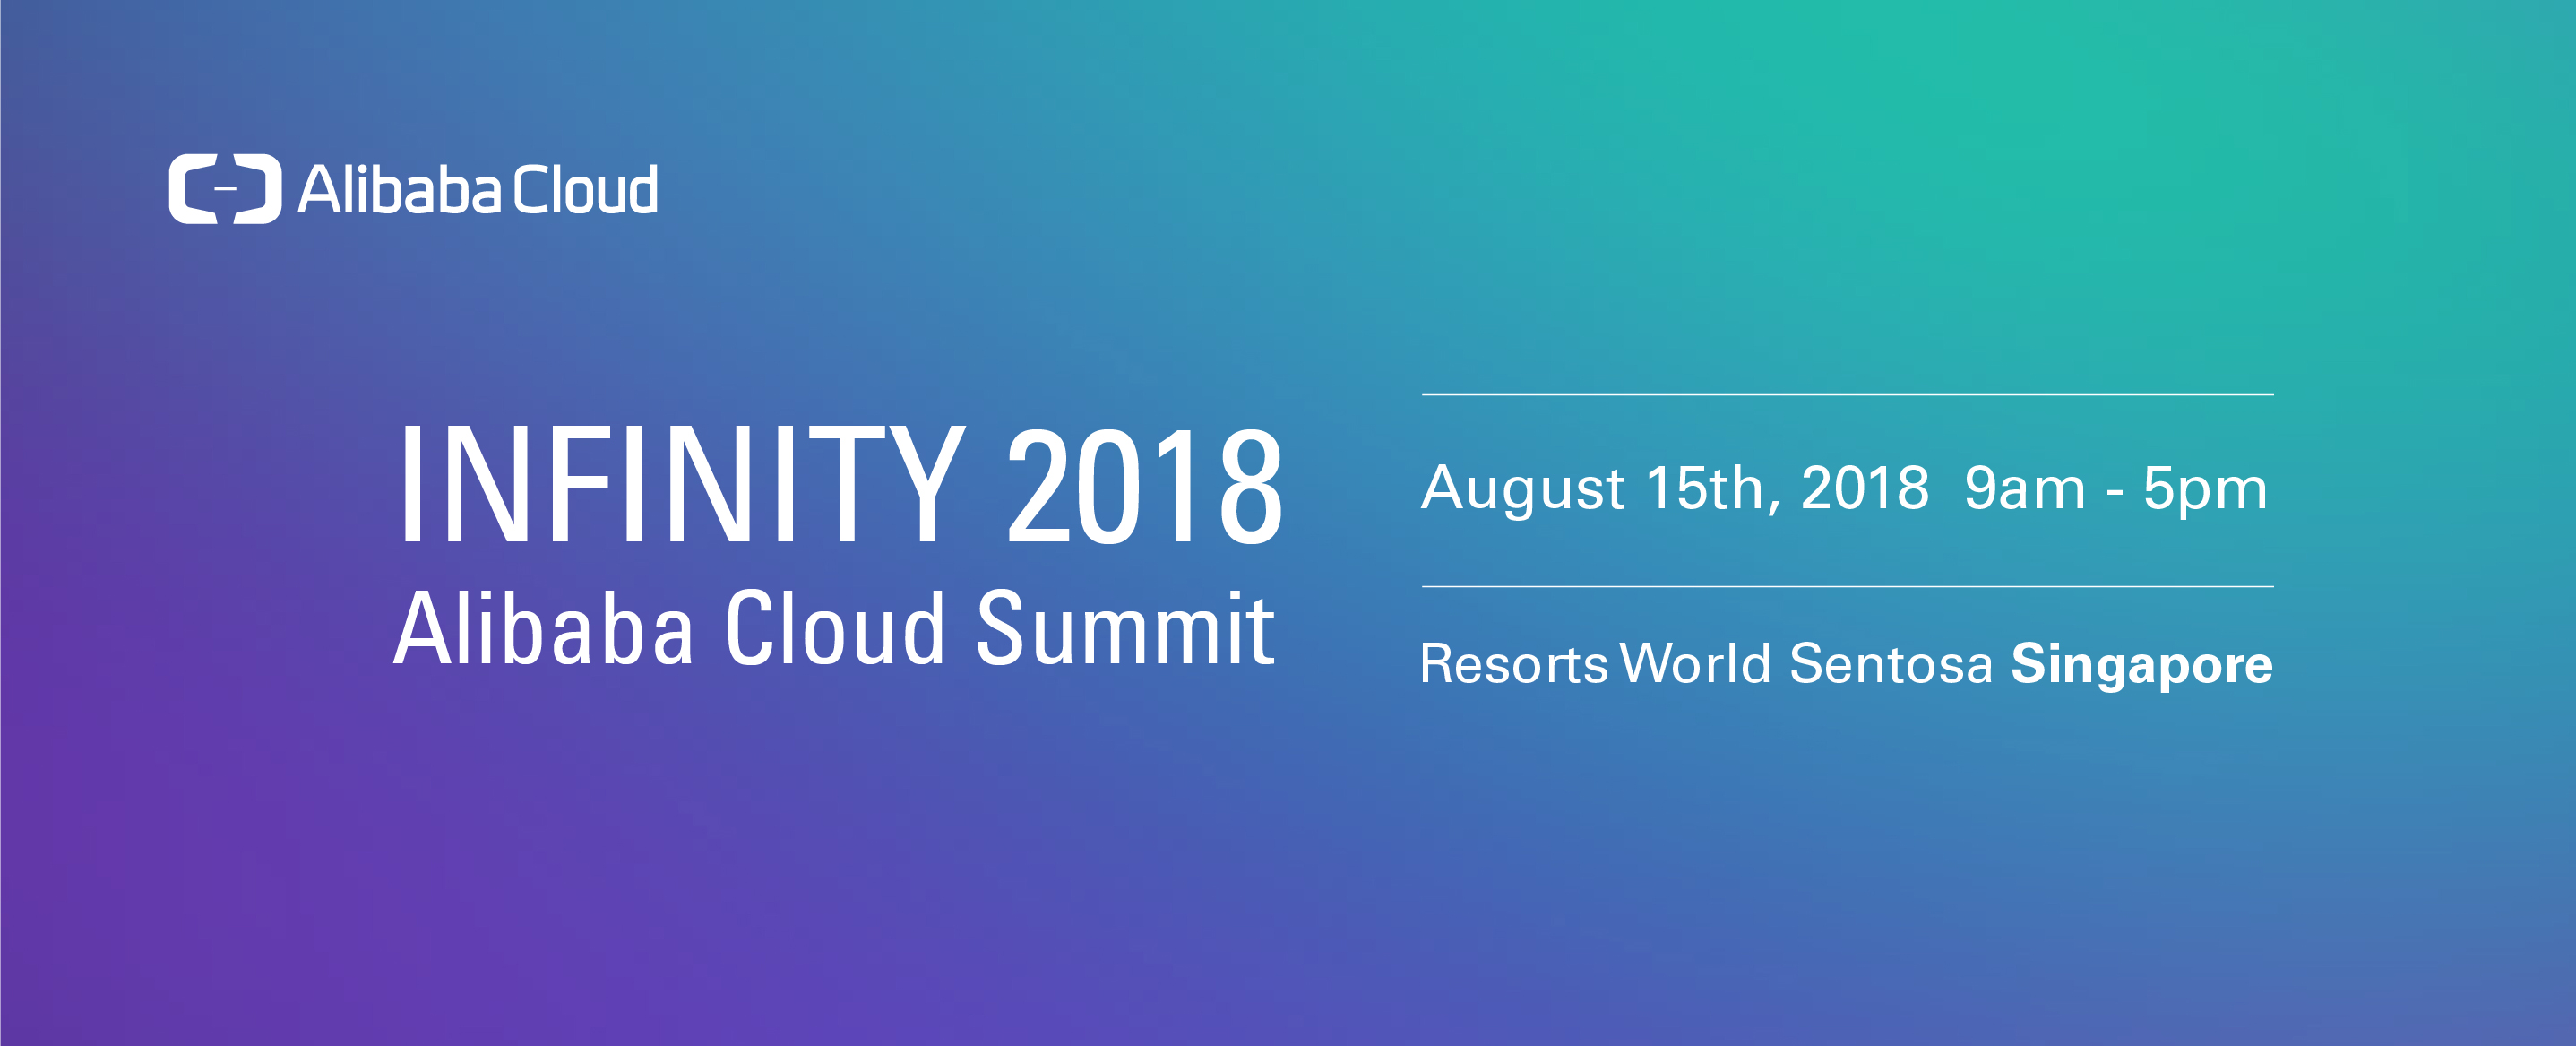 Alibaba Cloud Summit [Infinity 2018]